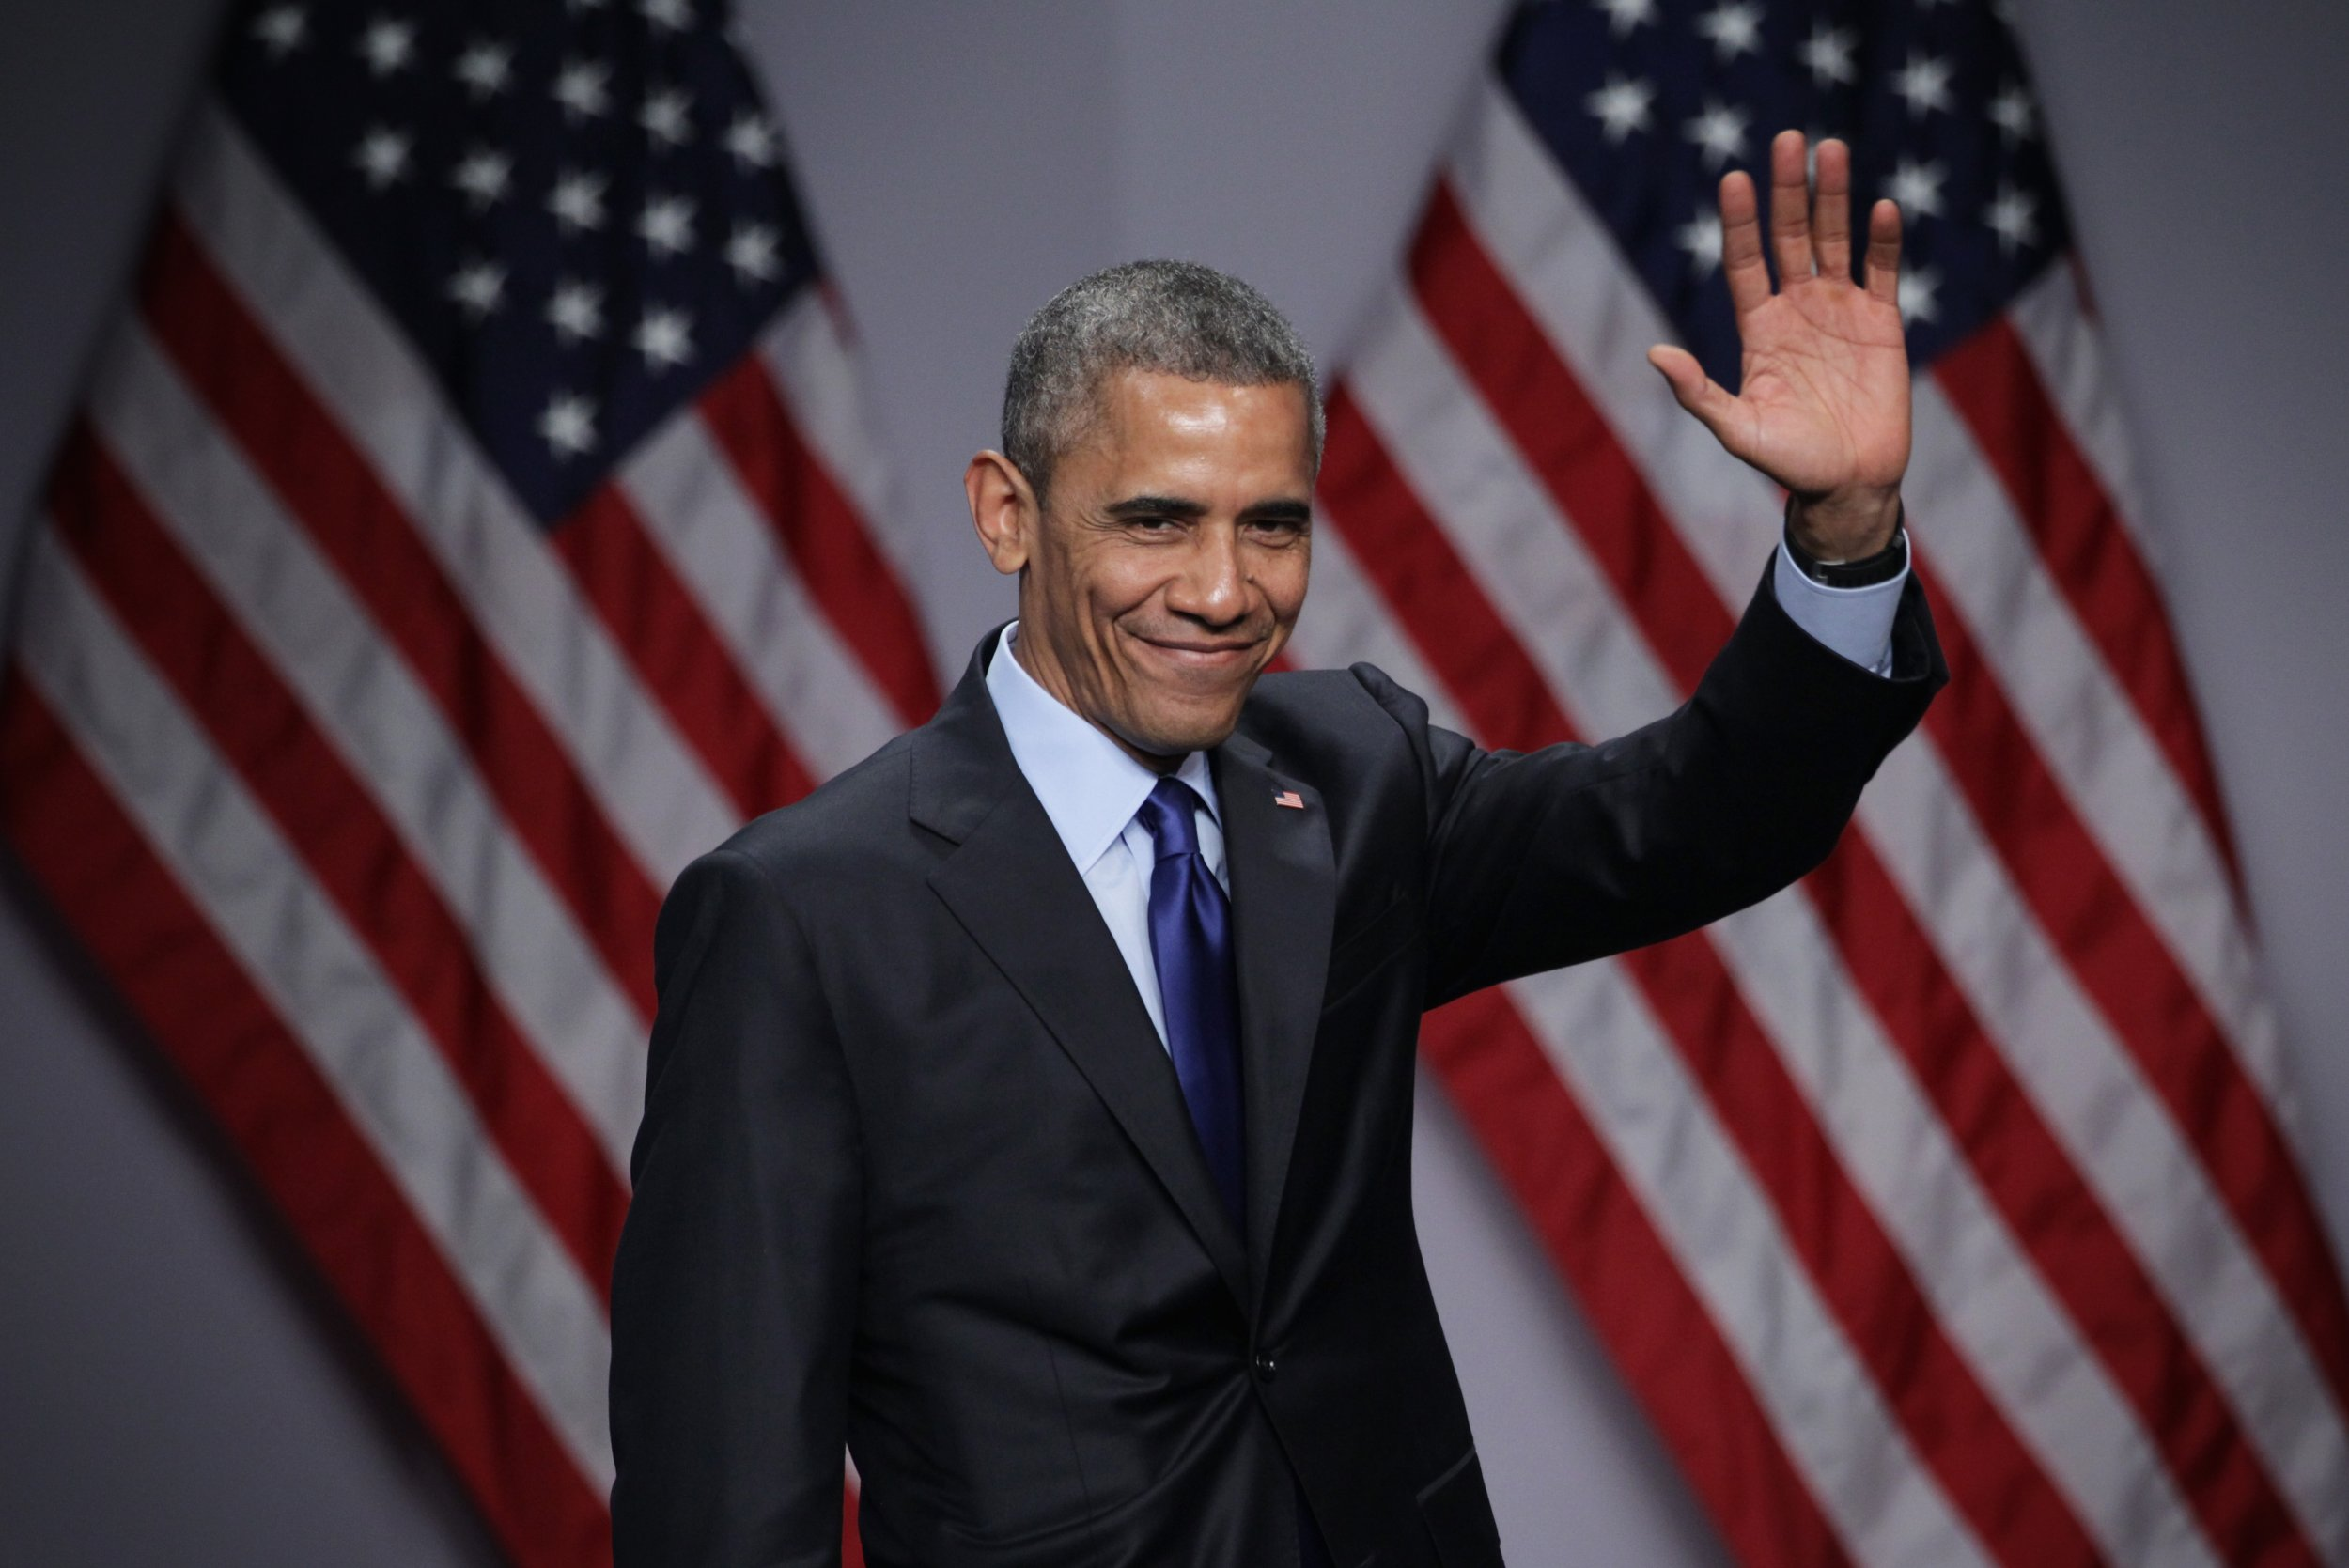 Barack Obama wants you to come to his Chicago leadership summit—and to change America